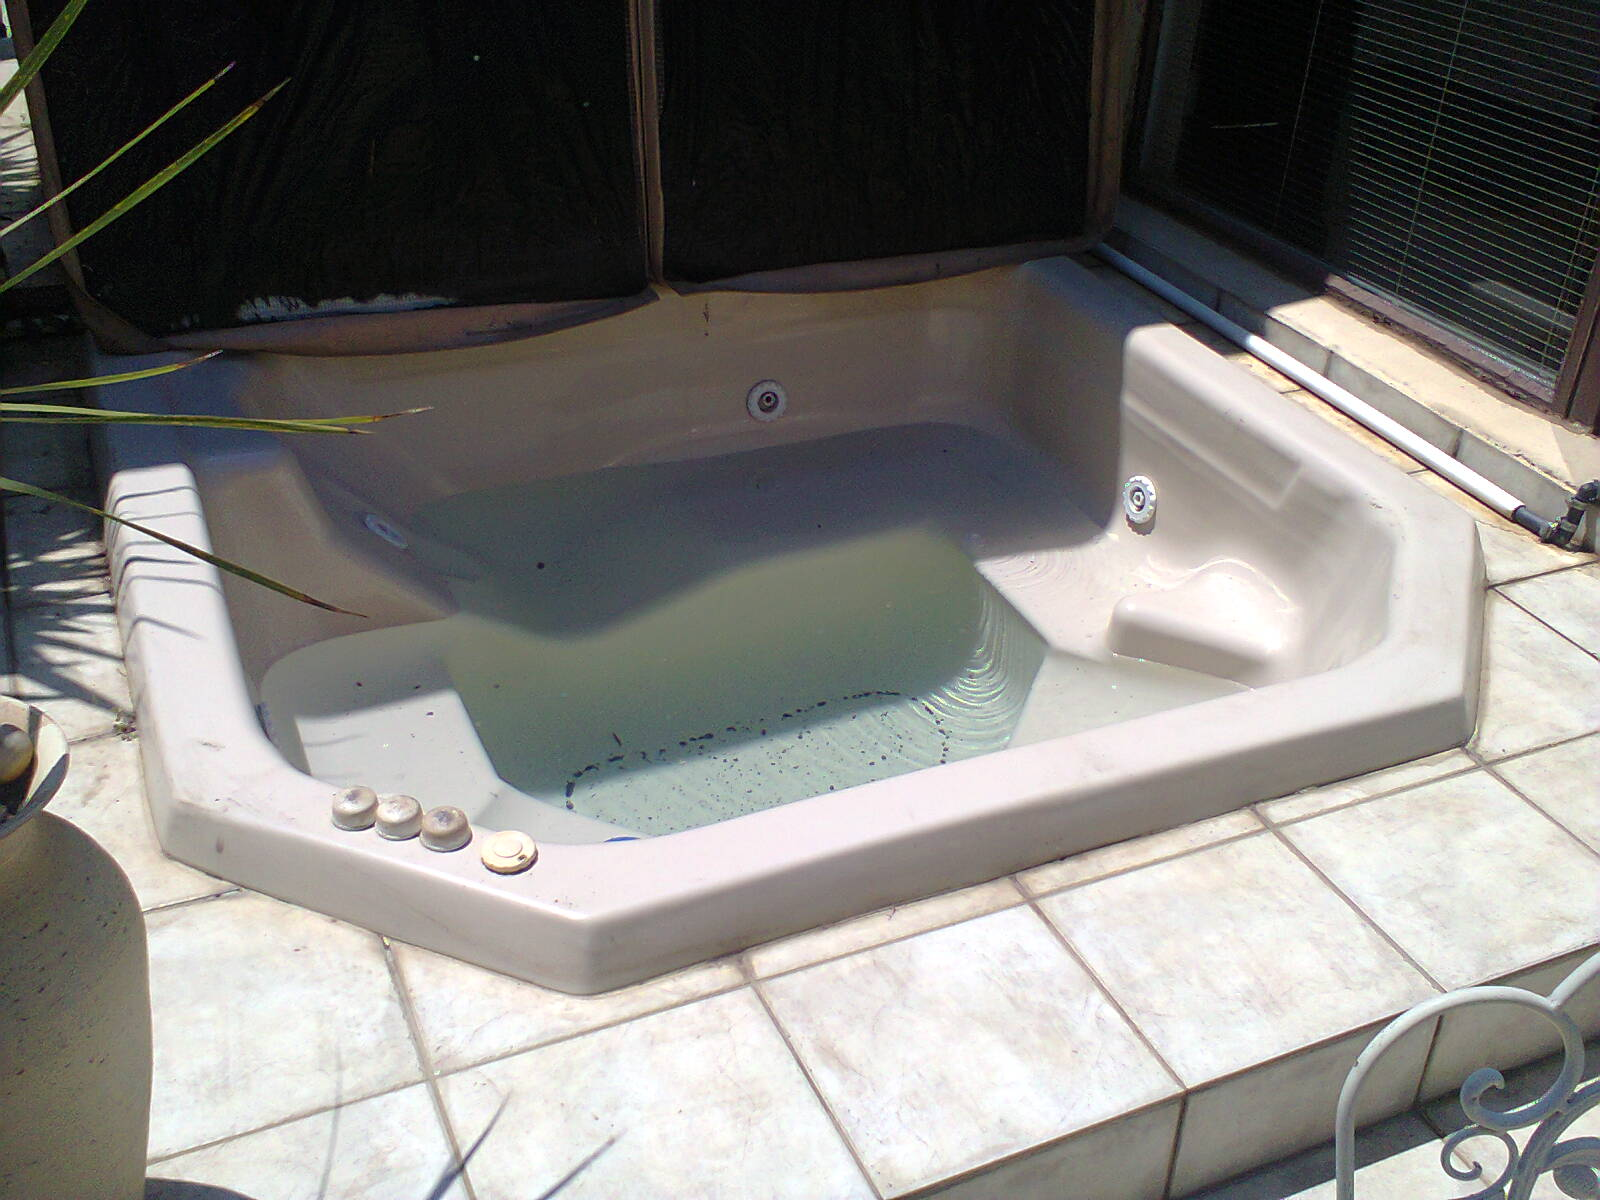 Jacuzzi Types | Jacuzzi Repairs Johannesburg Call Now!! 073 488 6855